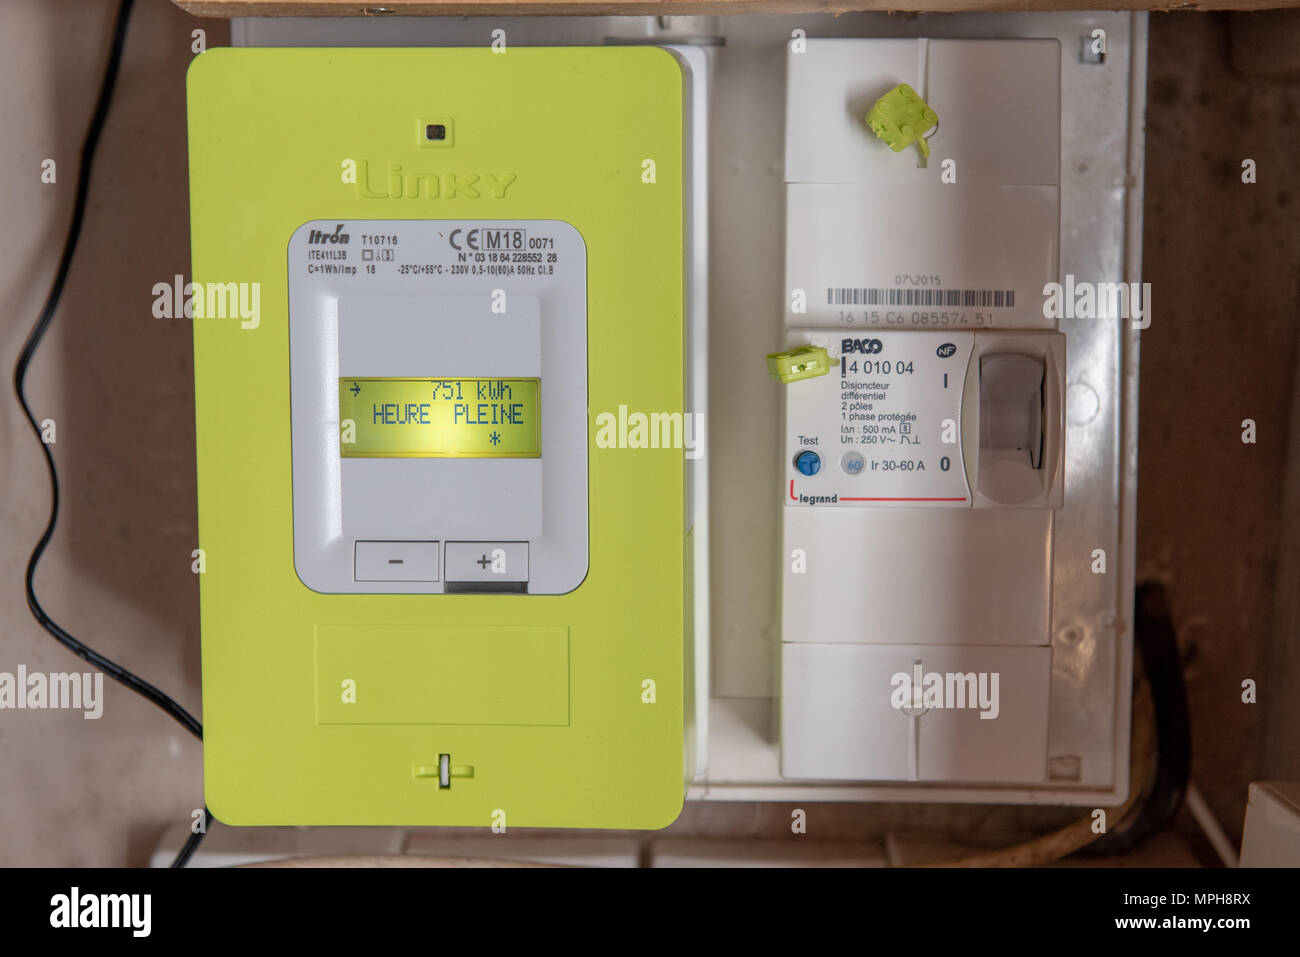 Compteur Linky Disjoncteur Paris France May 04 2018 New Smart Electric Meter Linky From